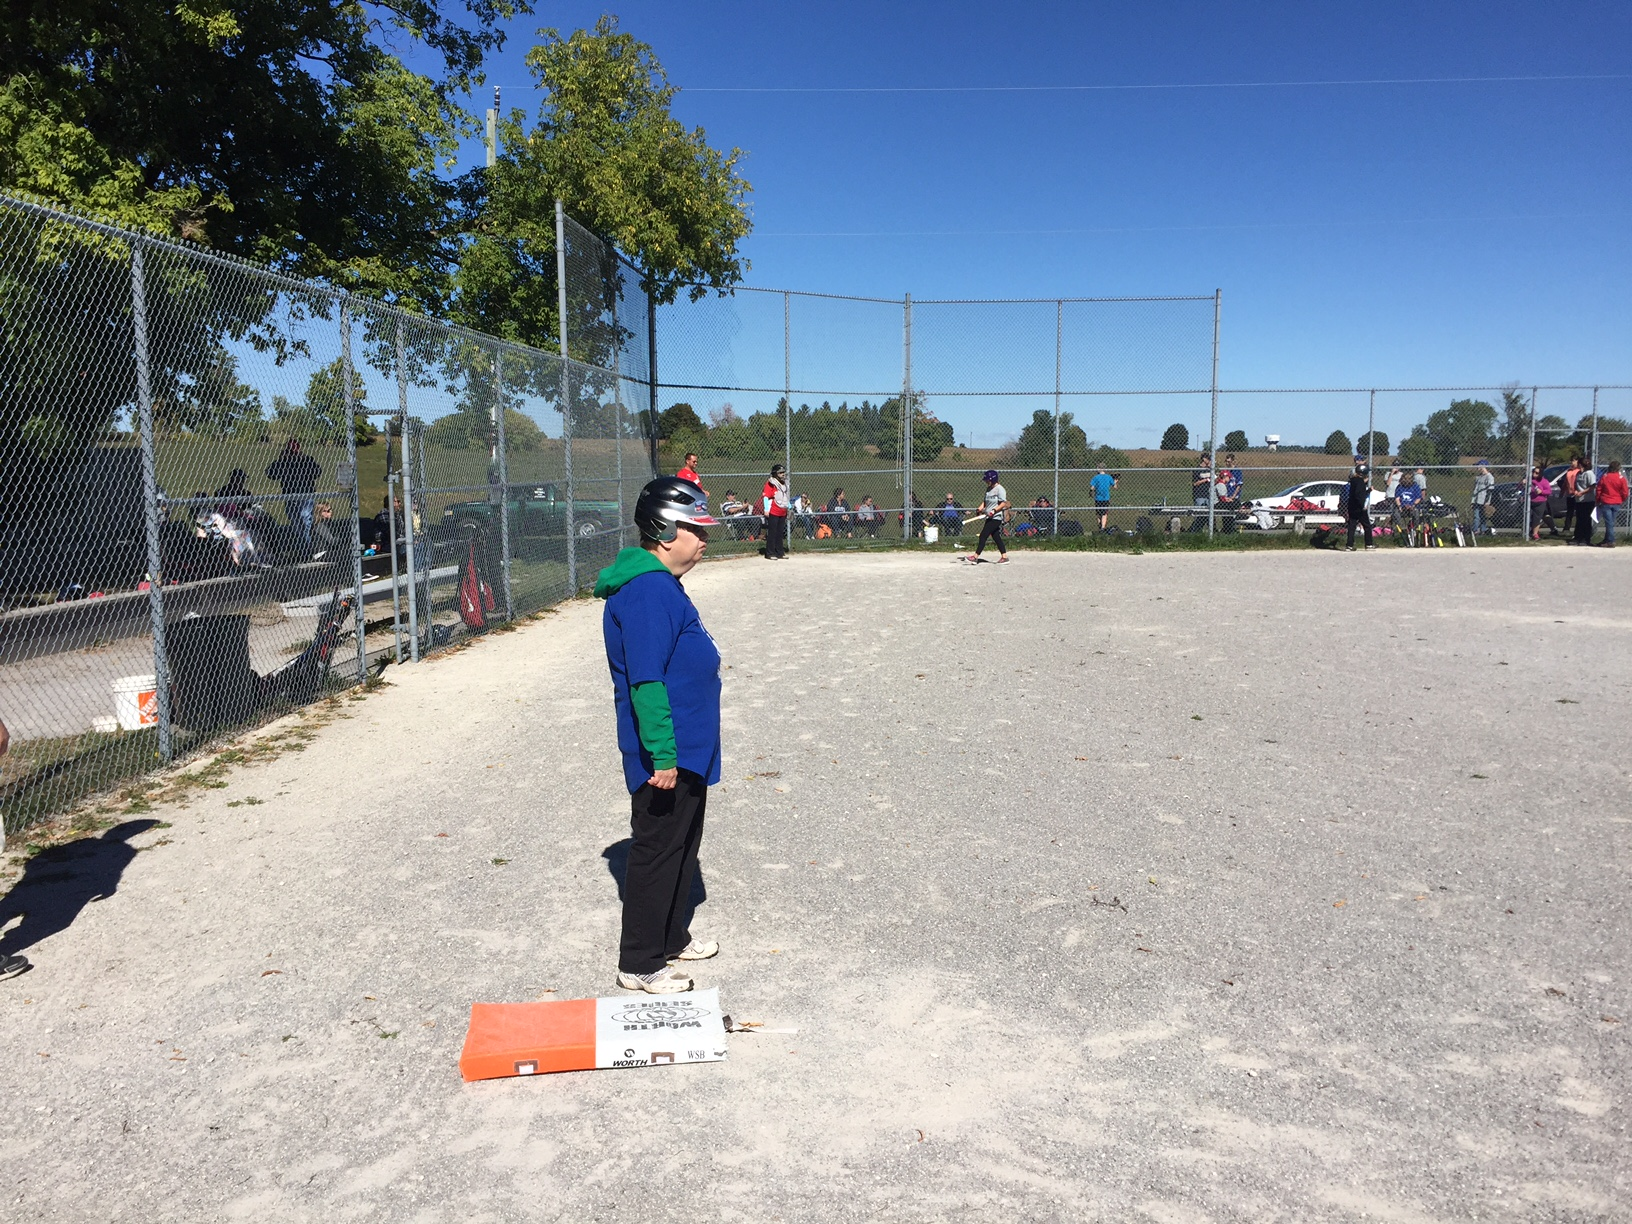 Baseball Tournament Participant on base